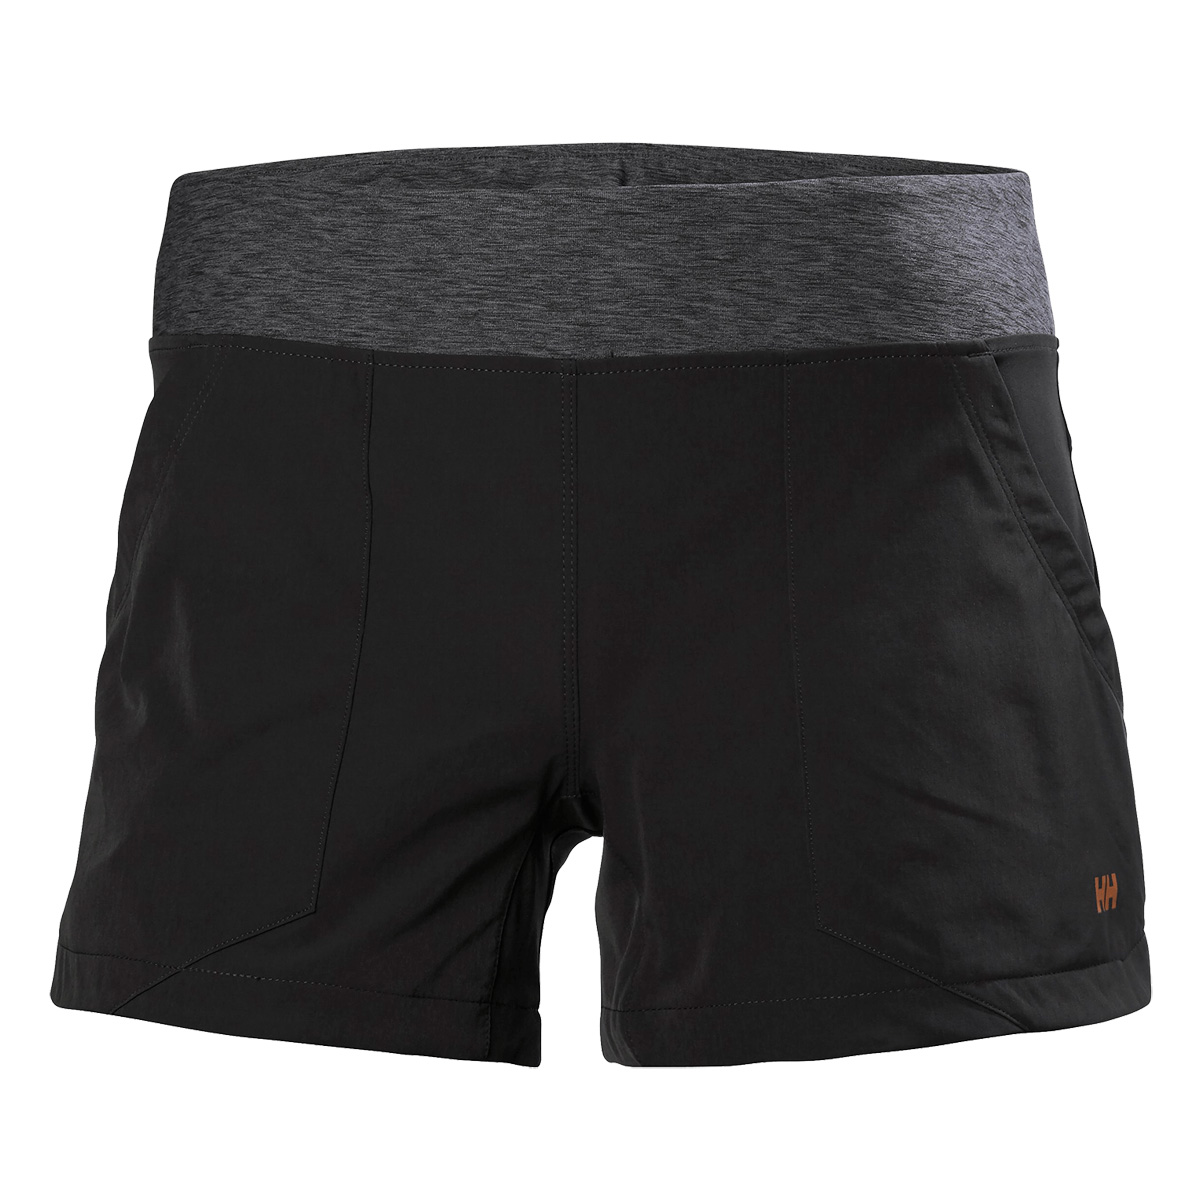 HELLY HANSEN WOMEN'S HILD QD SHORT (62697)